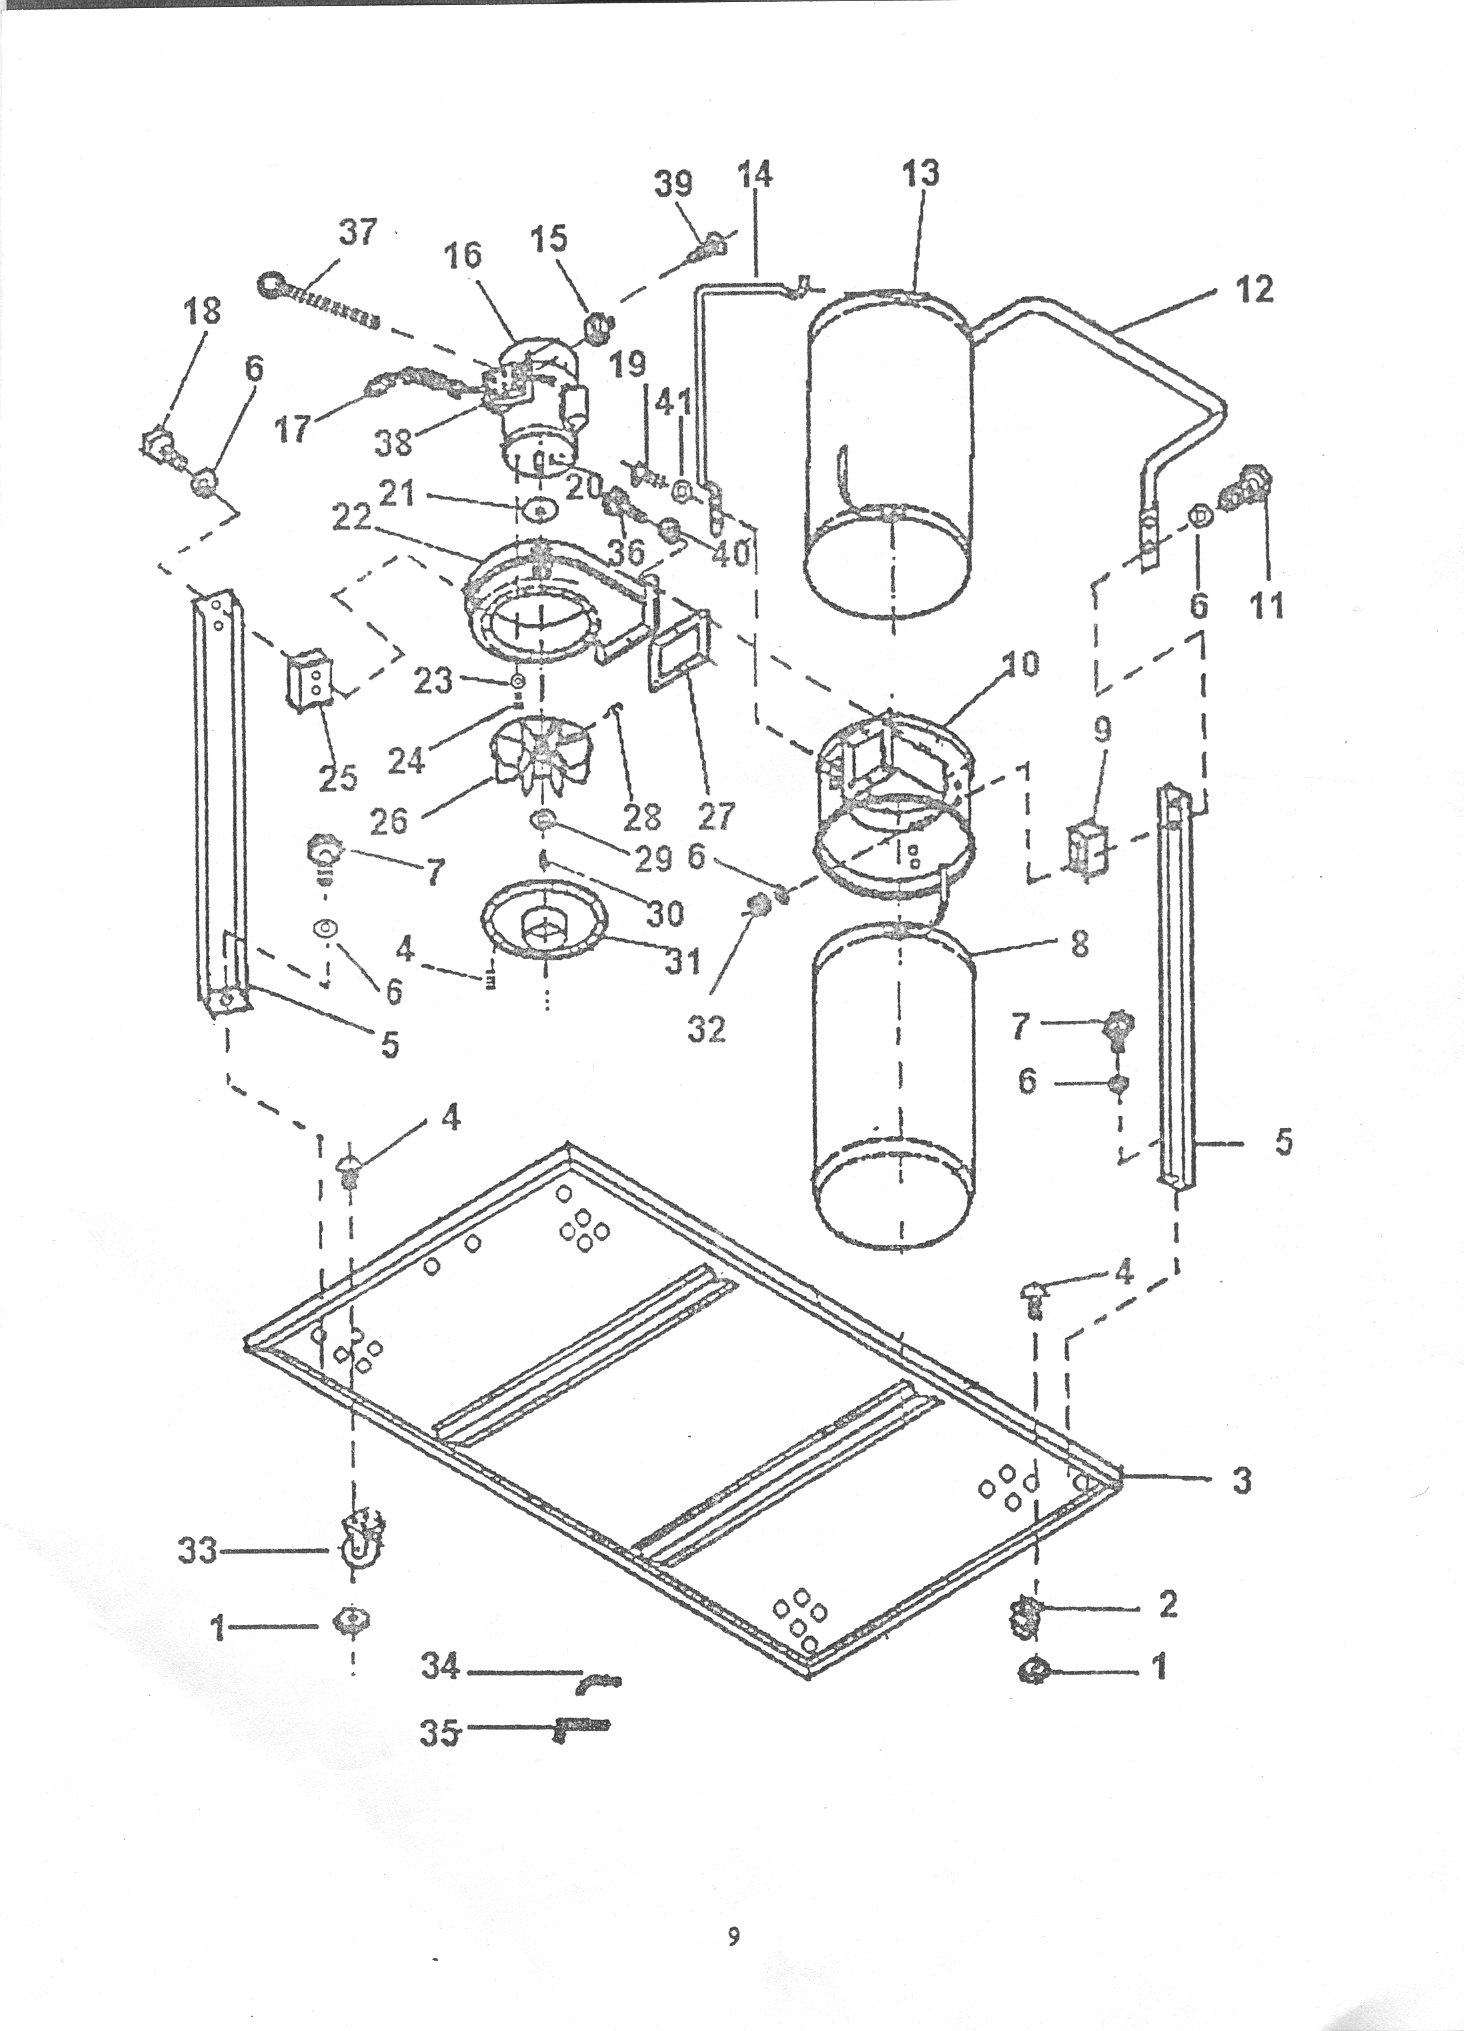 SIP 01342 Dust Collector Diagram